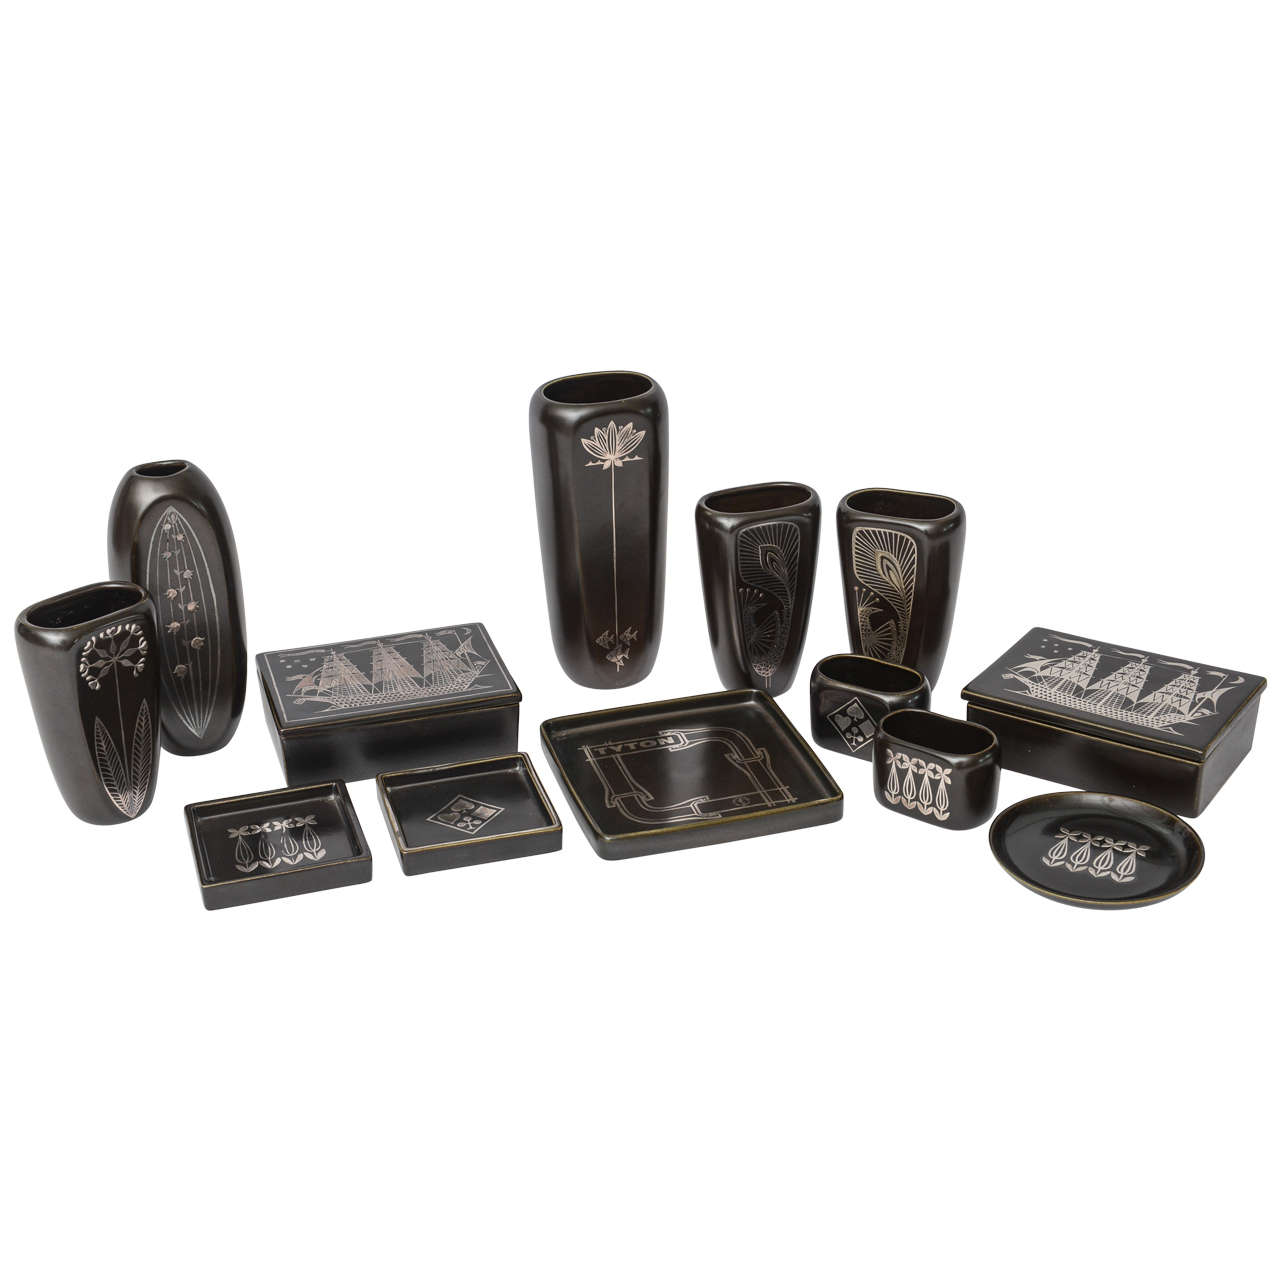 "Collection of Gustavsberg ""Argenta"" Ceramics in Black Glaze with Silver Inlay"